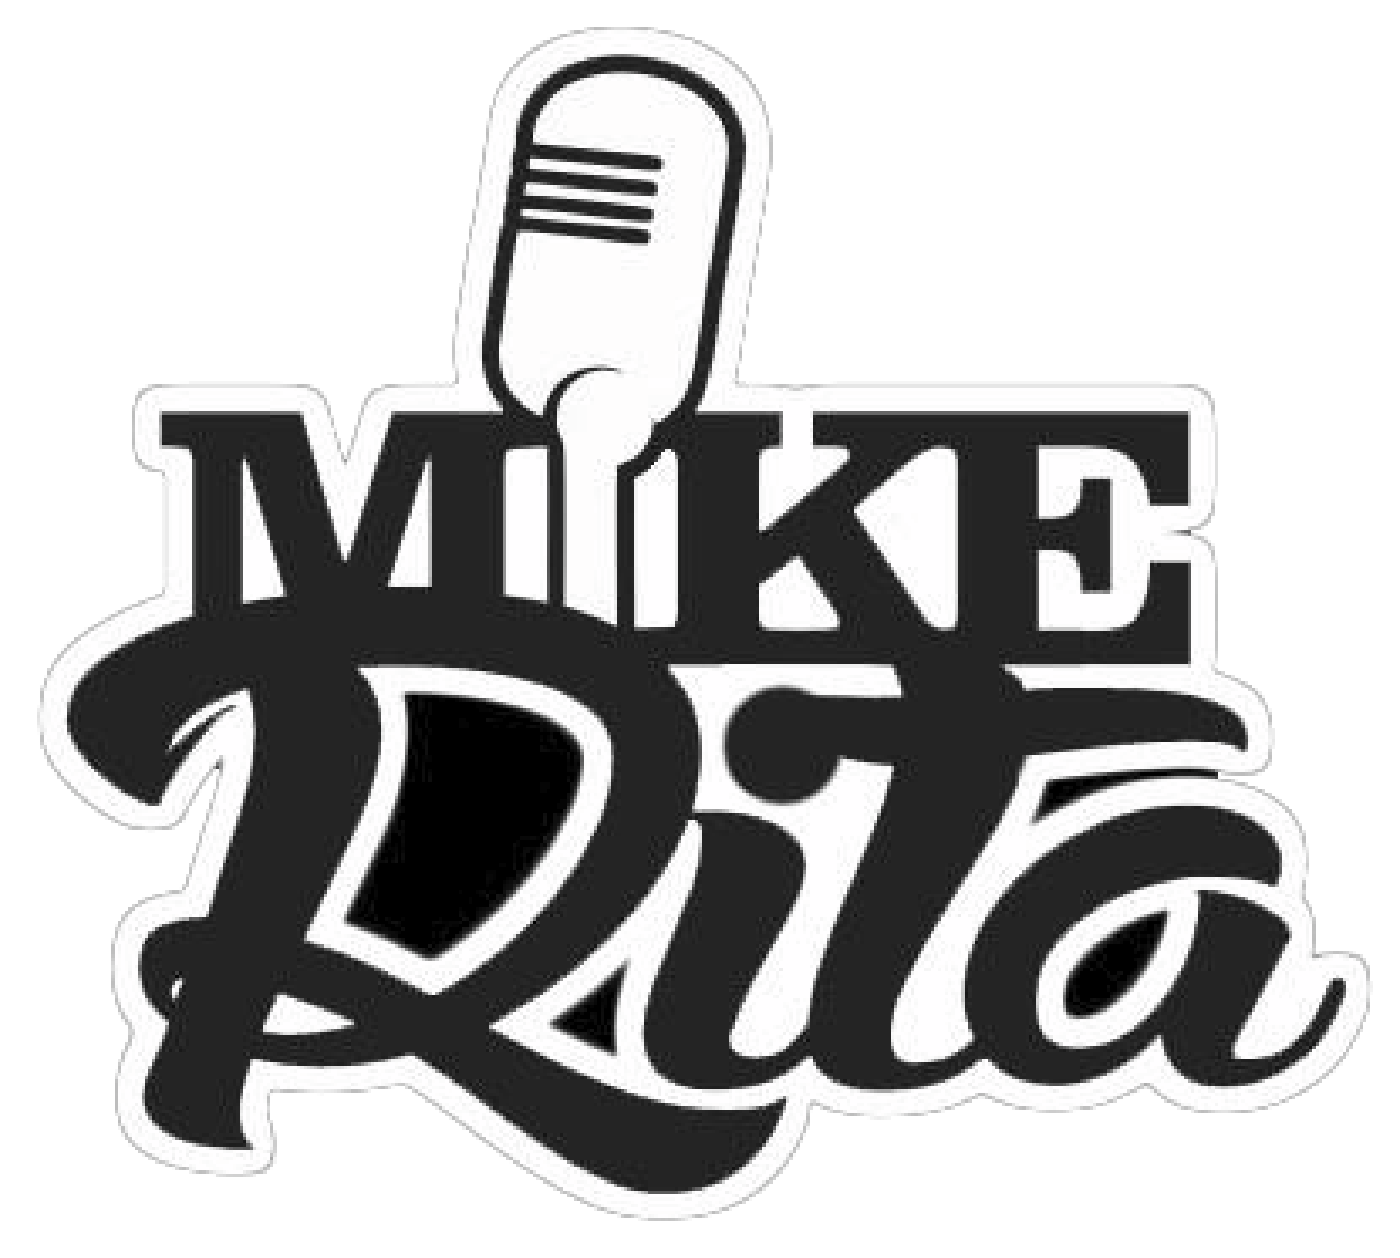 Mr clipart calligraphy mr. Mike rita welcome to